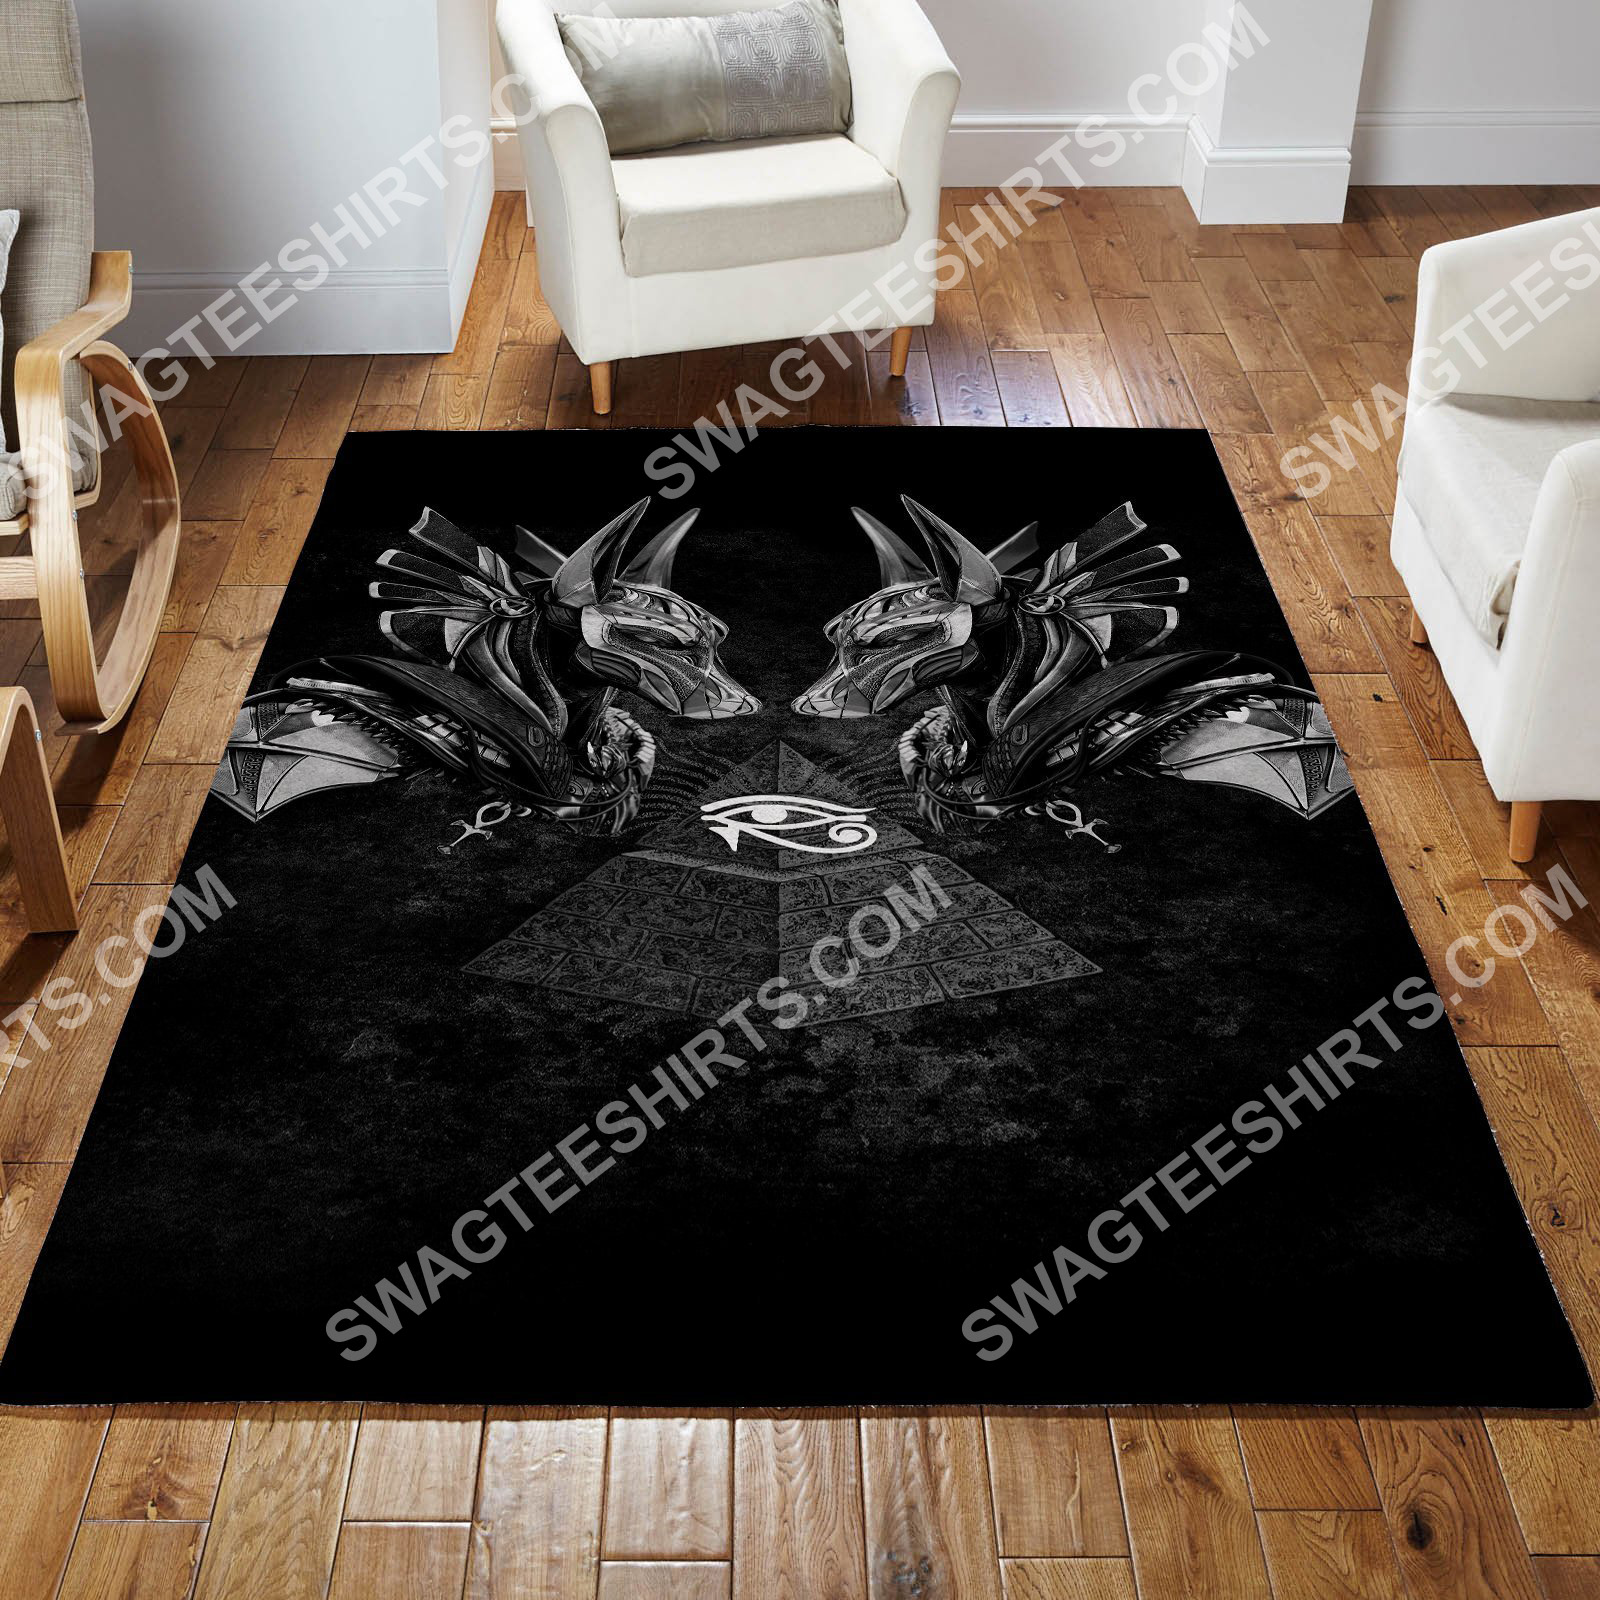 anubis god of the dead all over printed rug 2(1) - Copy